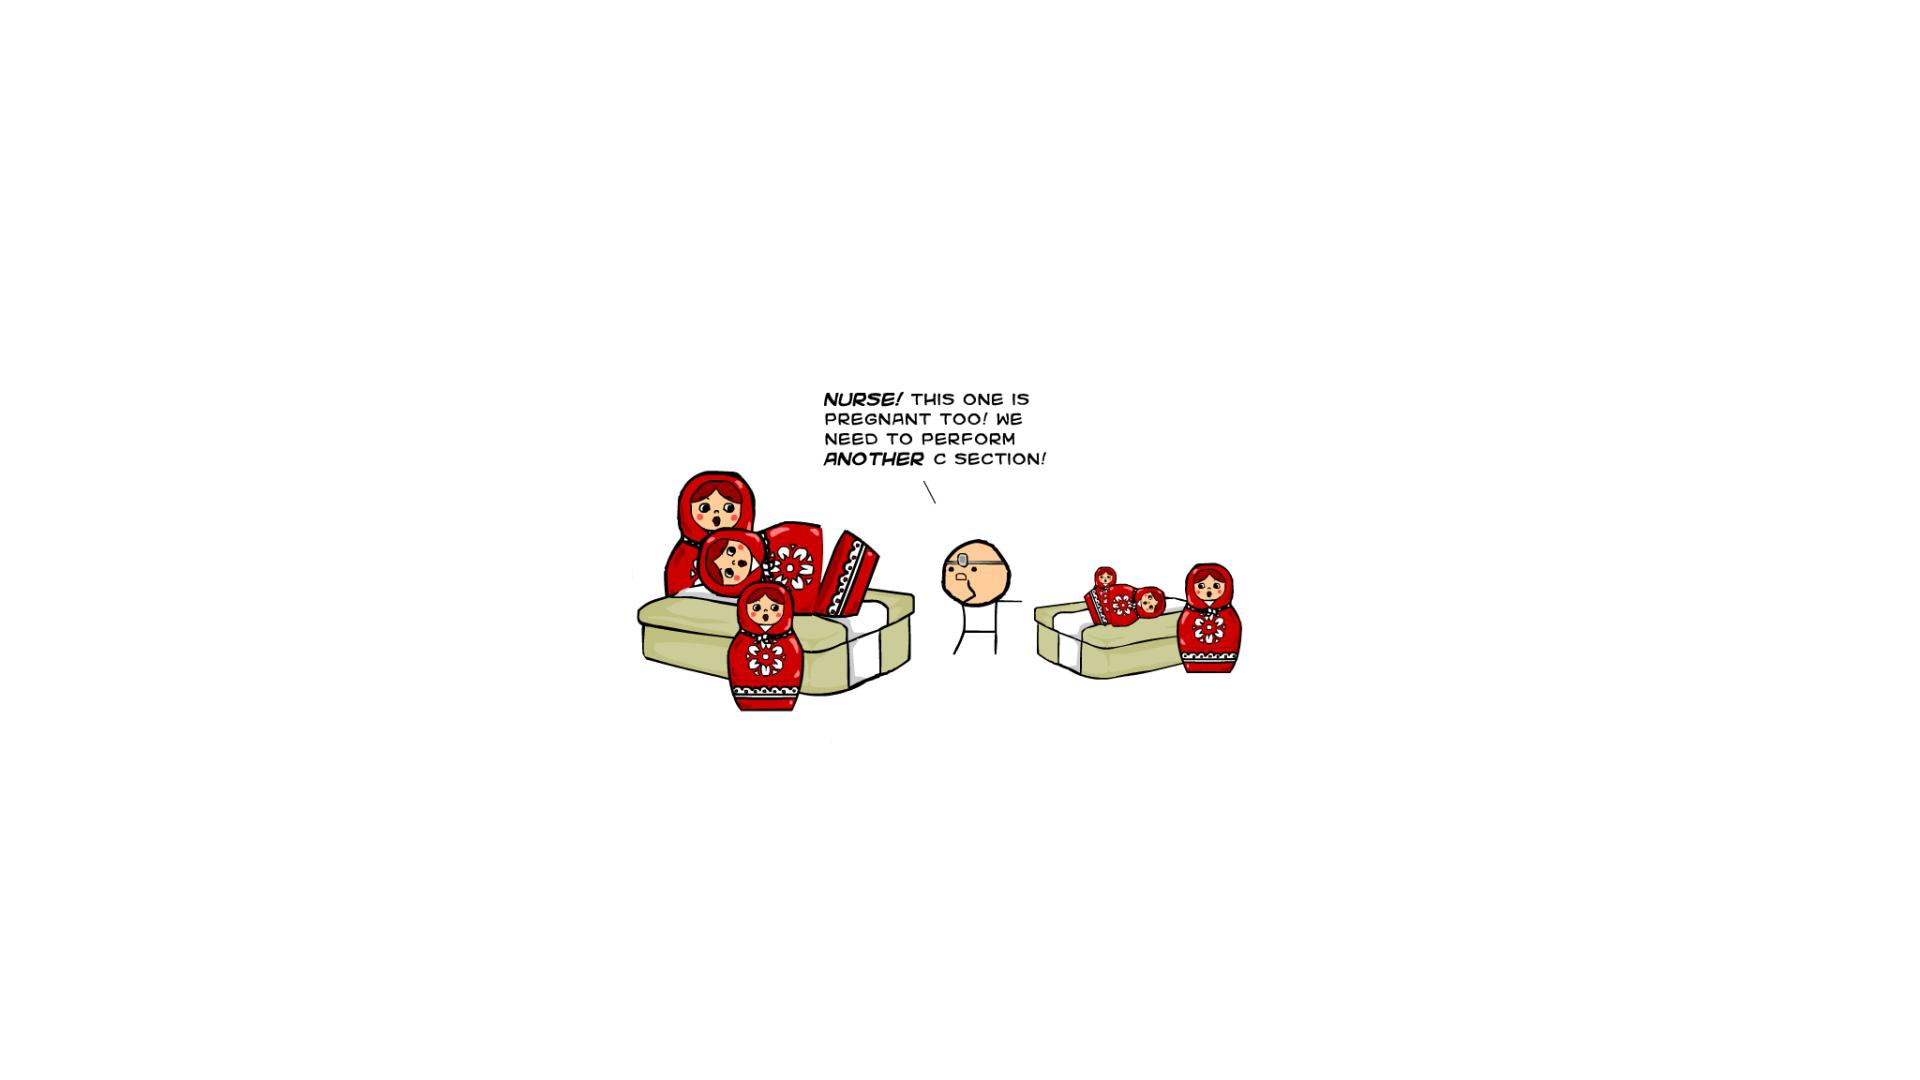 Cyanide And Happiness at 1280 x 960 size wallpapers HD quality